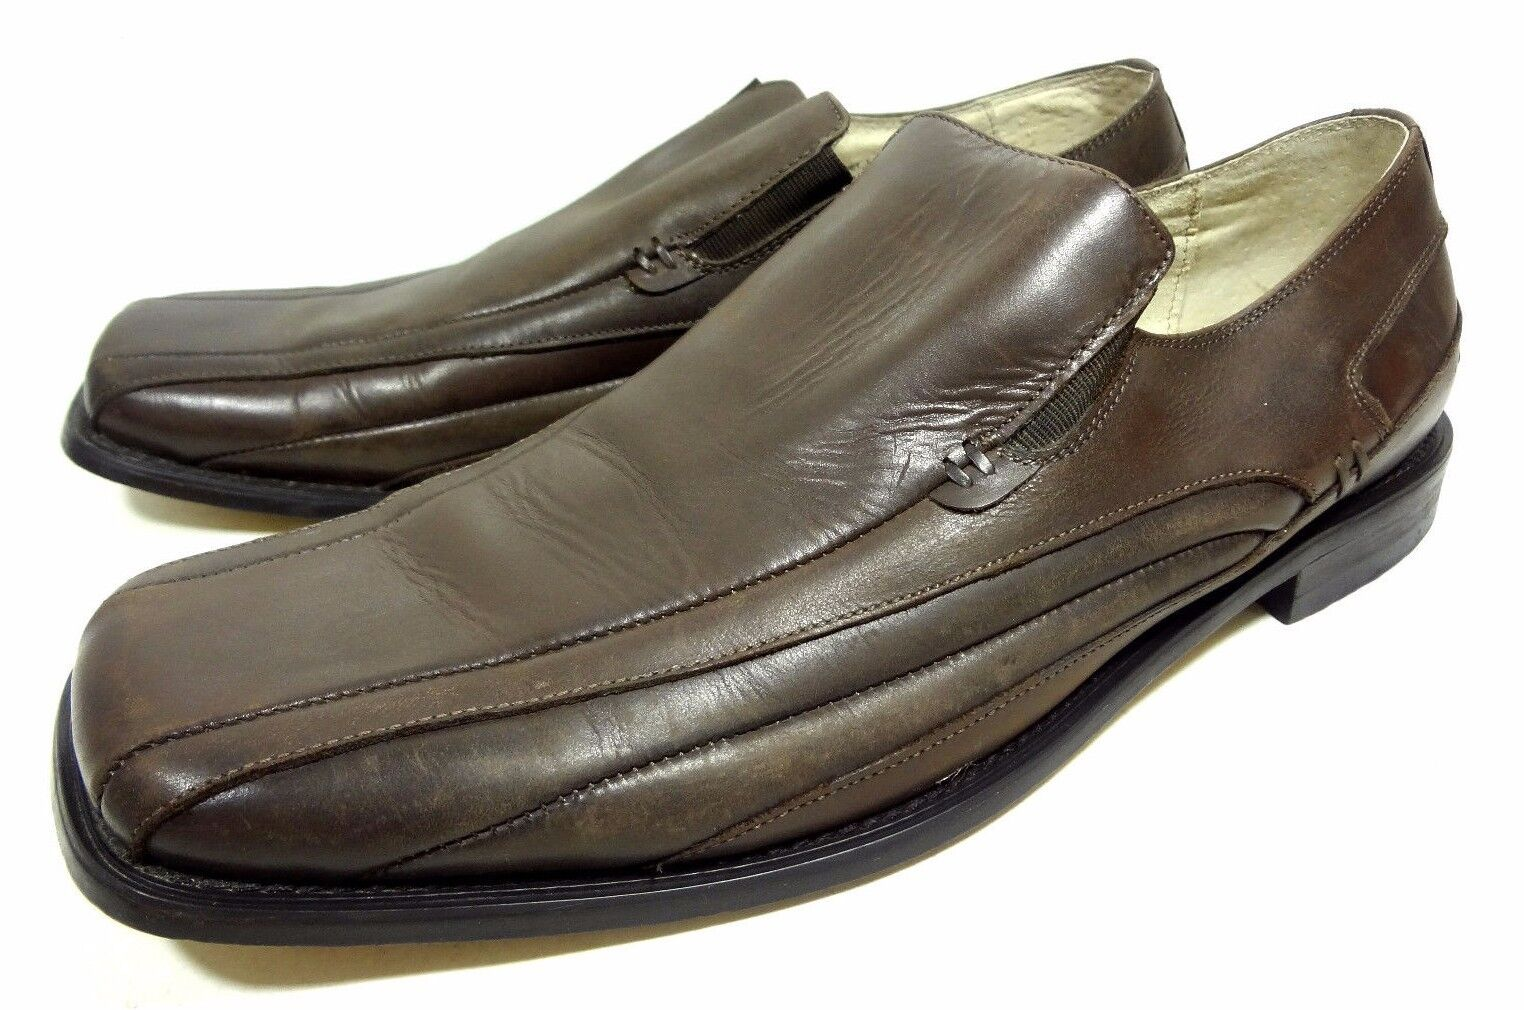 STACY ADAMS DARK BROWN LOAFERS LEATHER DRESS MENS SHOES SIZE 12 M